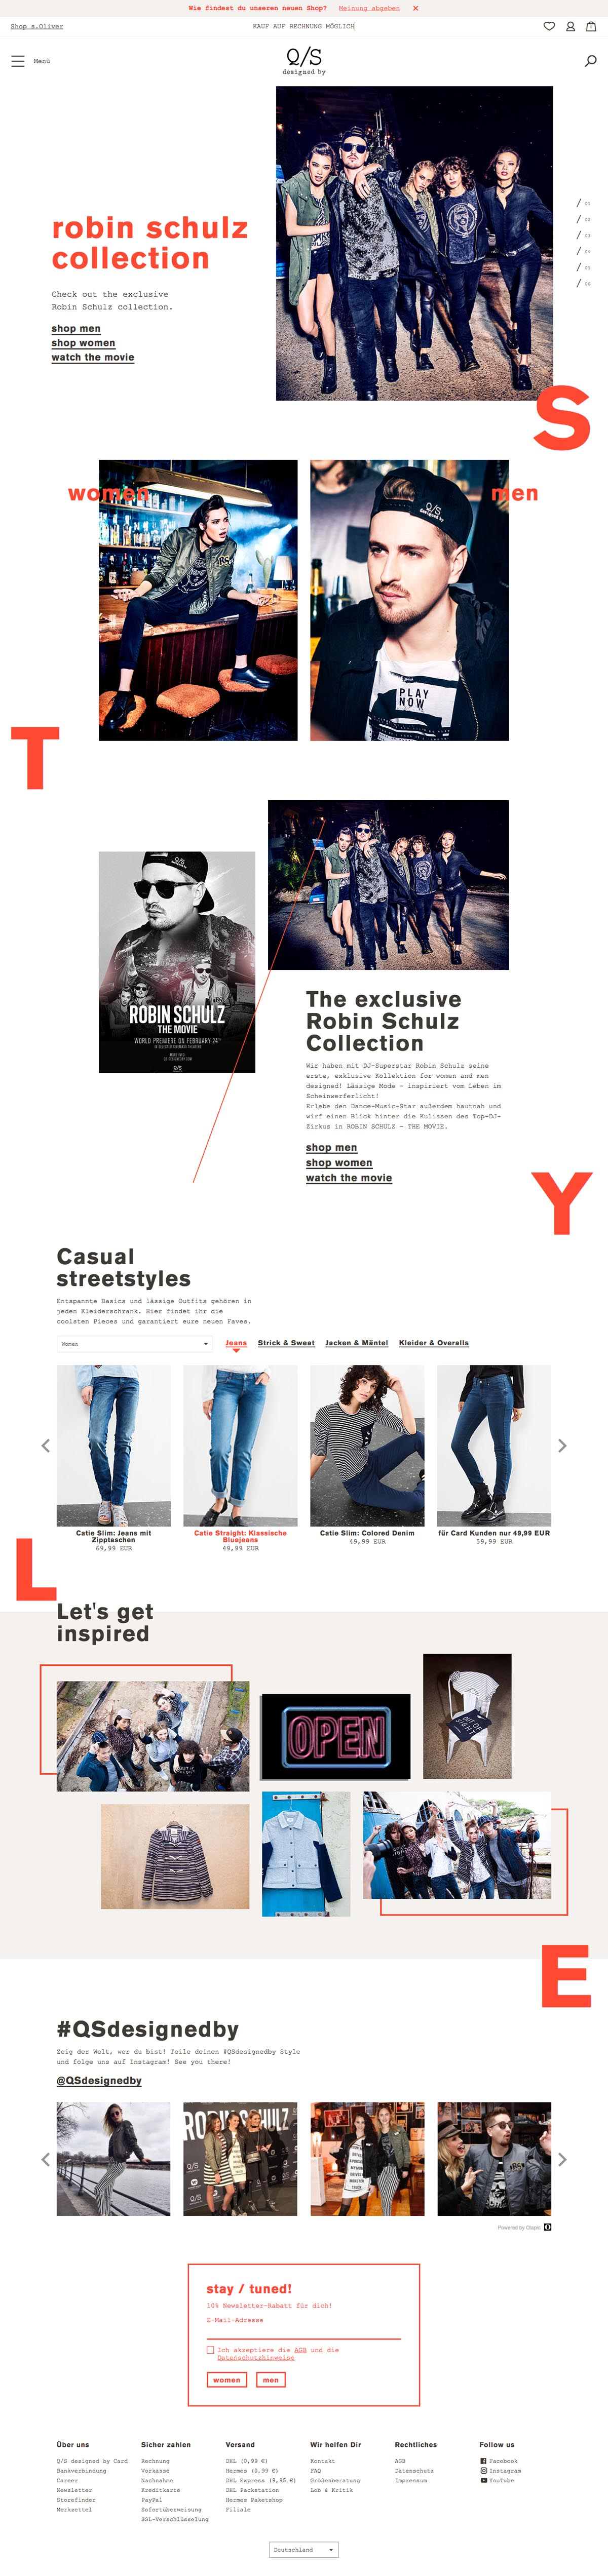 eCommerce website: Q/S designed by